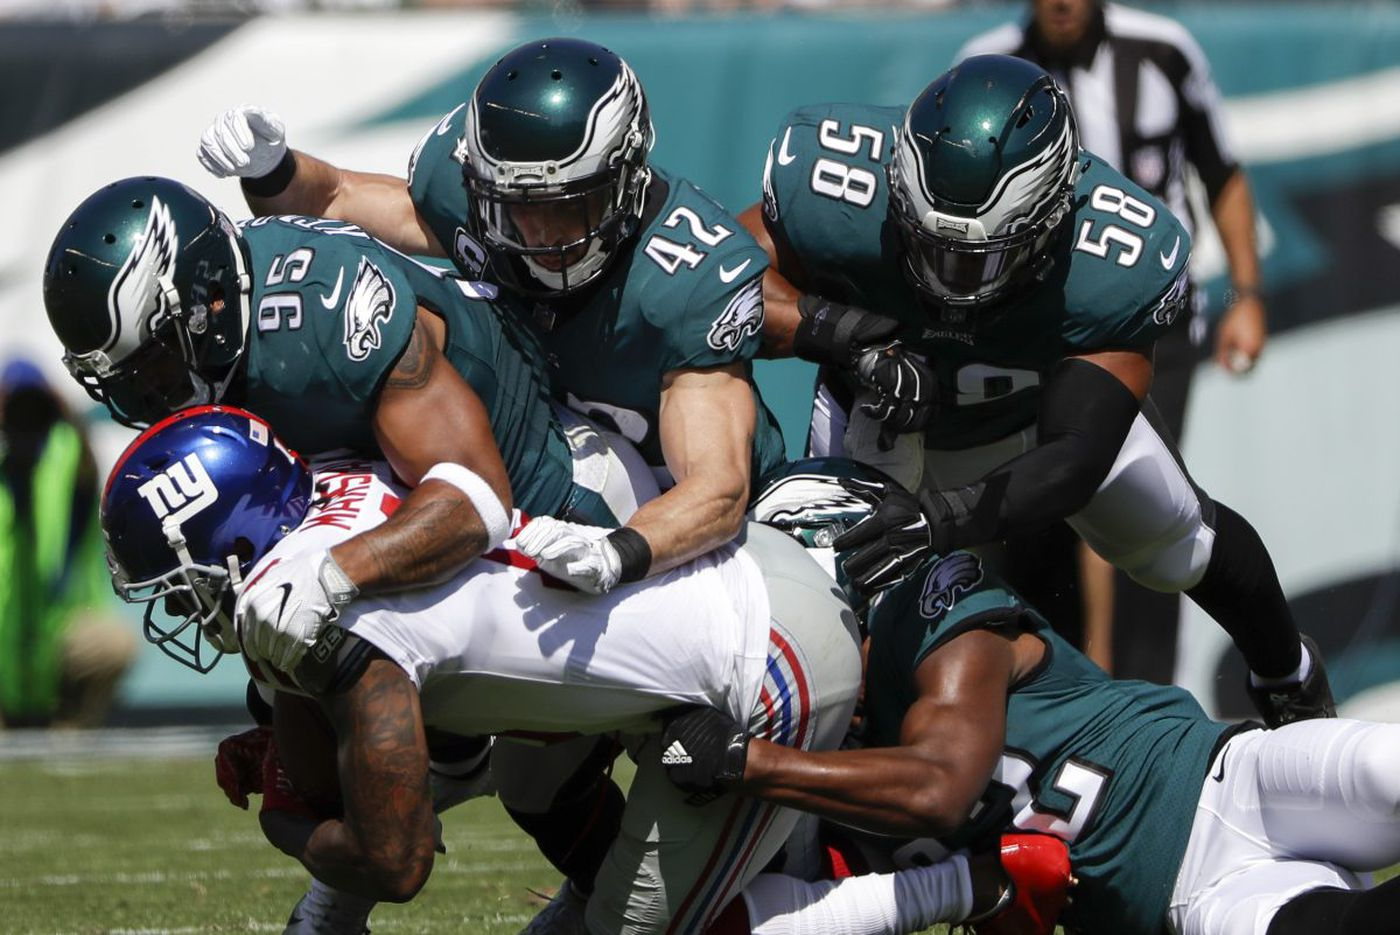 Eagles getting chill performances from Mychal Kendricks, mon | Marcus Hayes